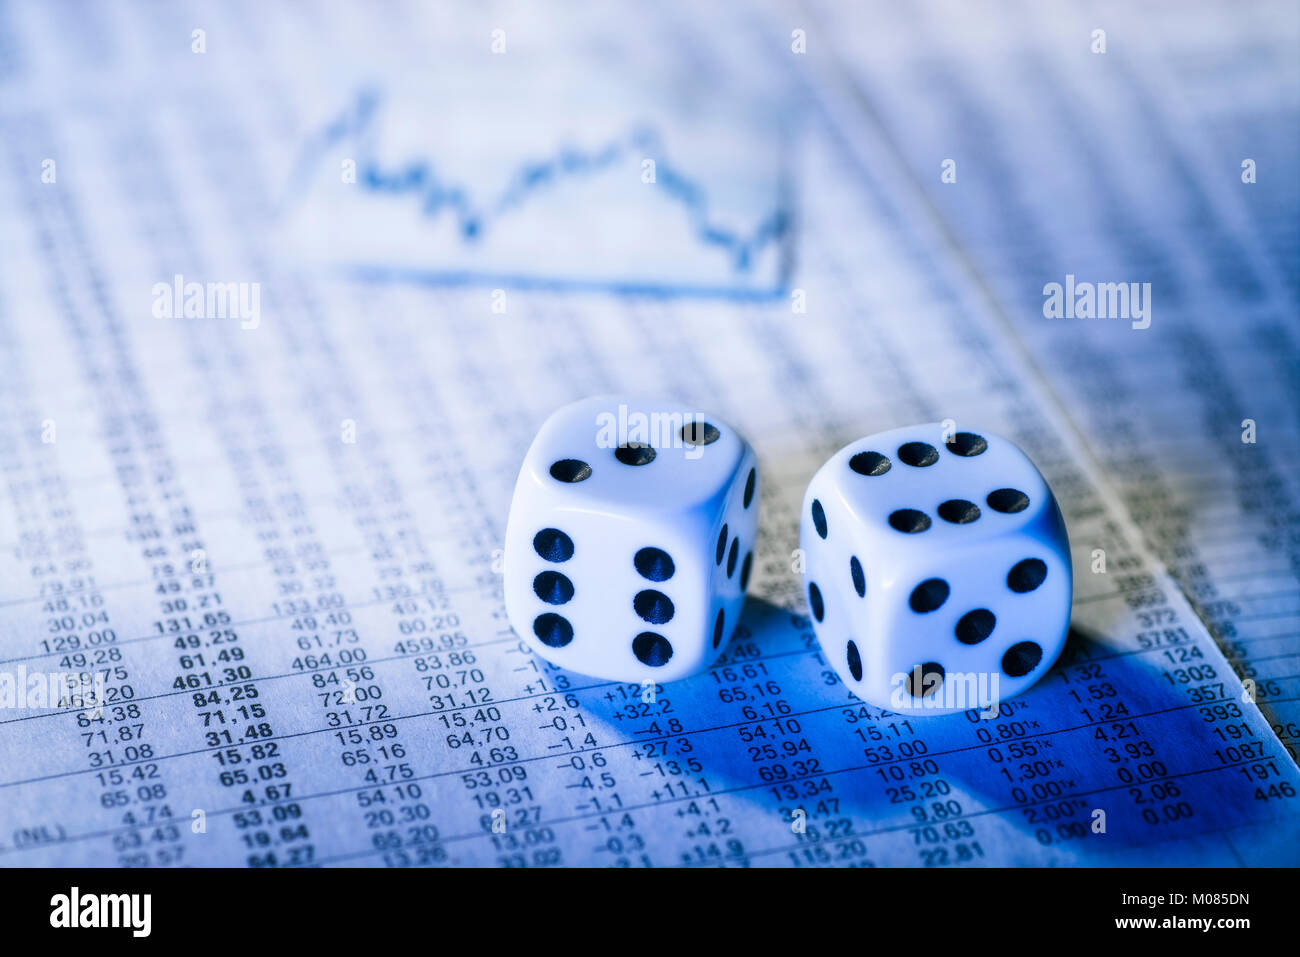 Two dice on a chart with stock prices - Stock Image